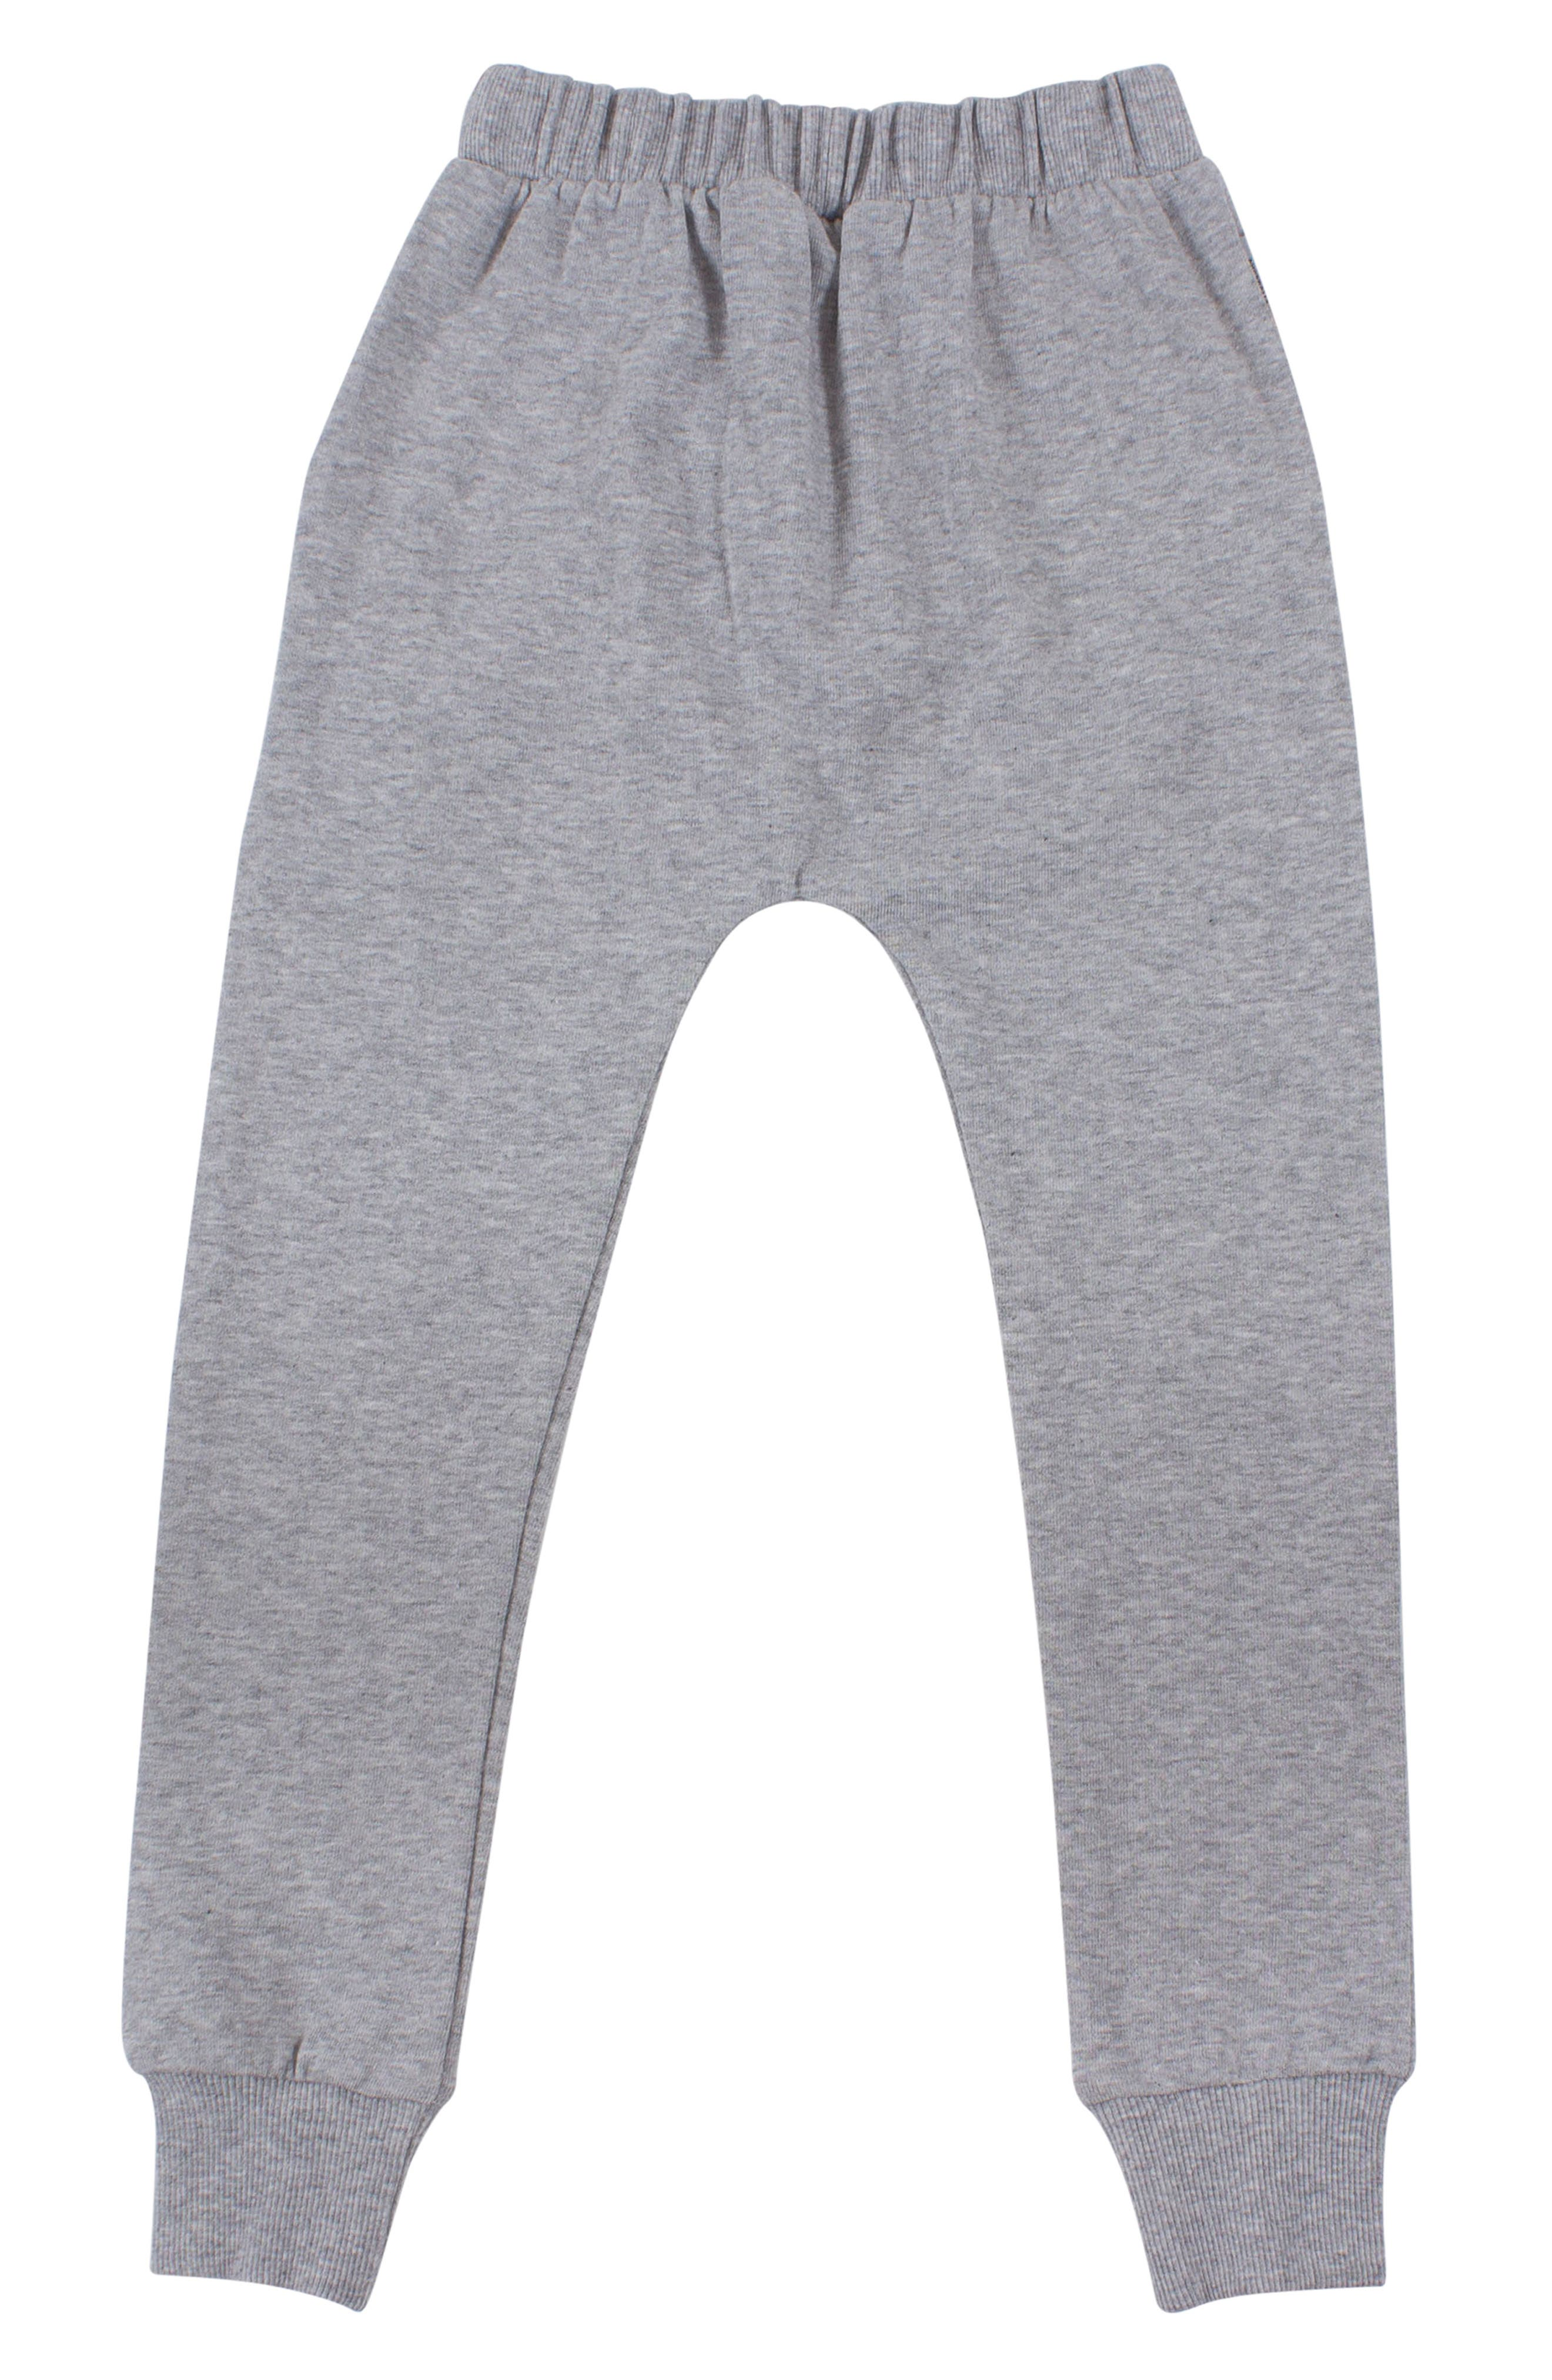 Zip Sweatpants,                             Alternate thumbnail 3, color,                             020